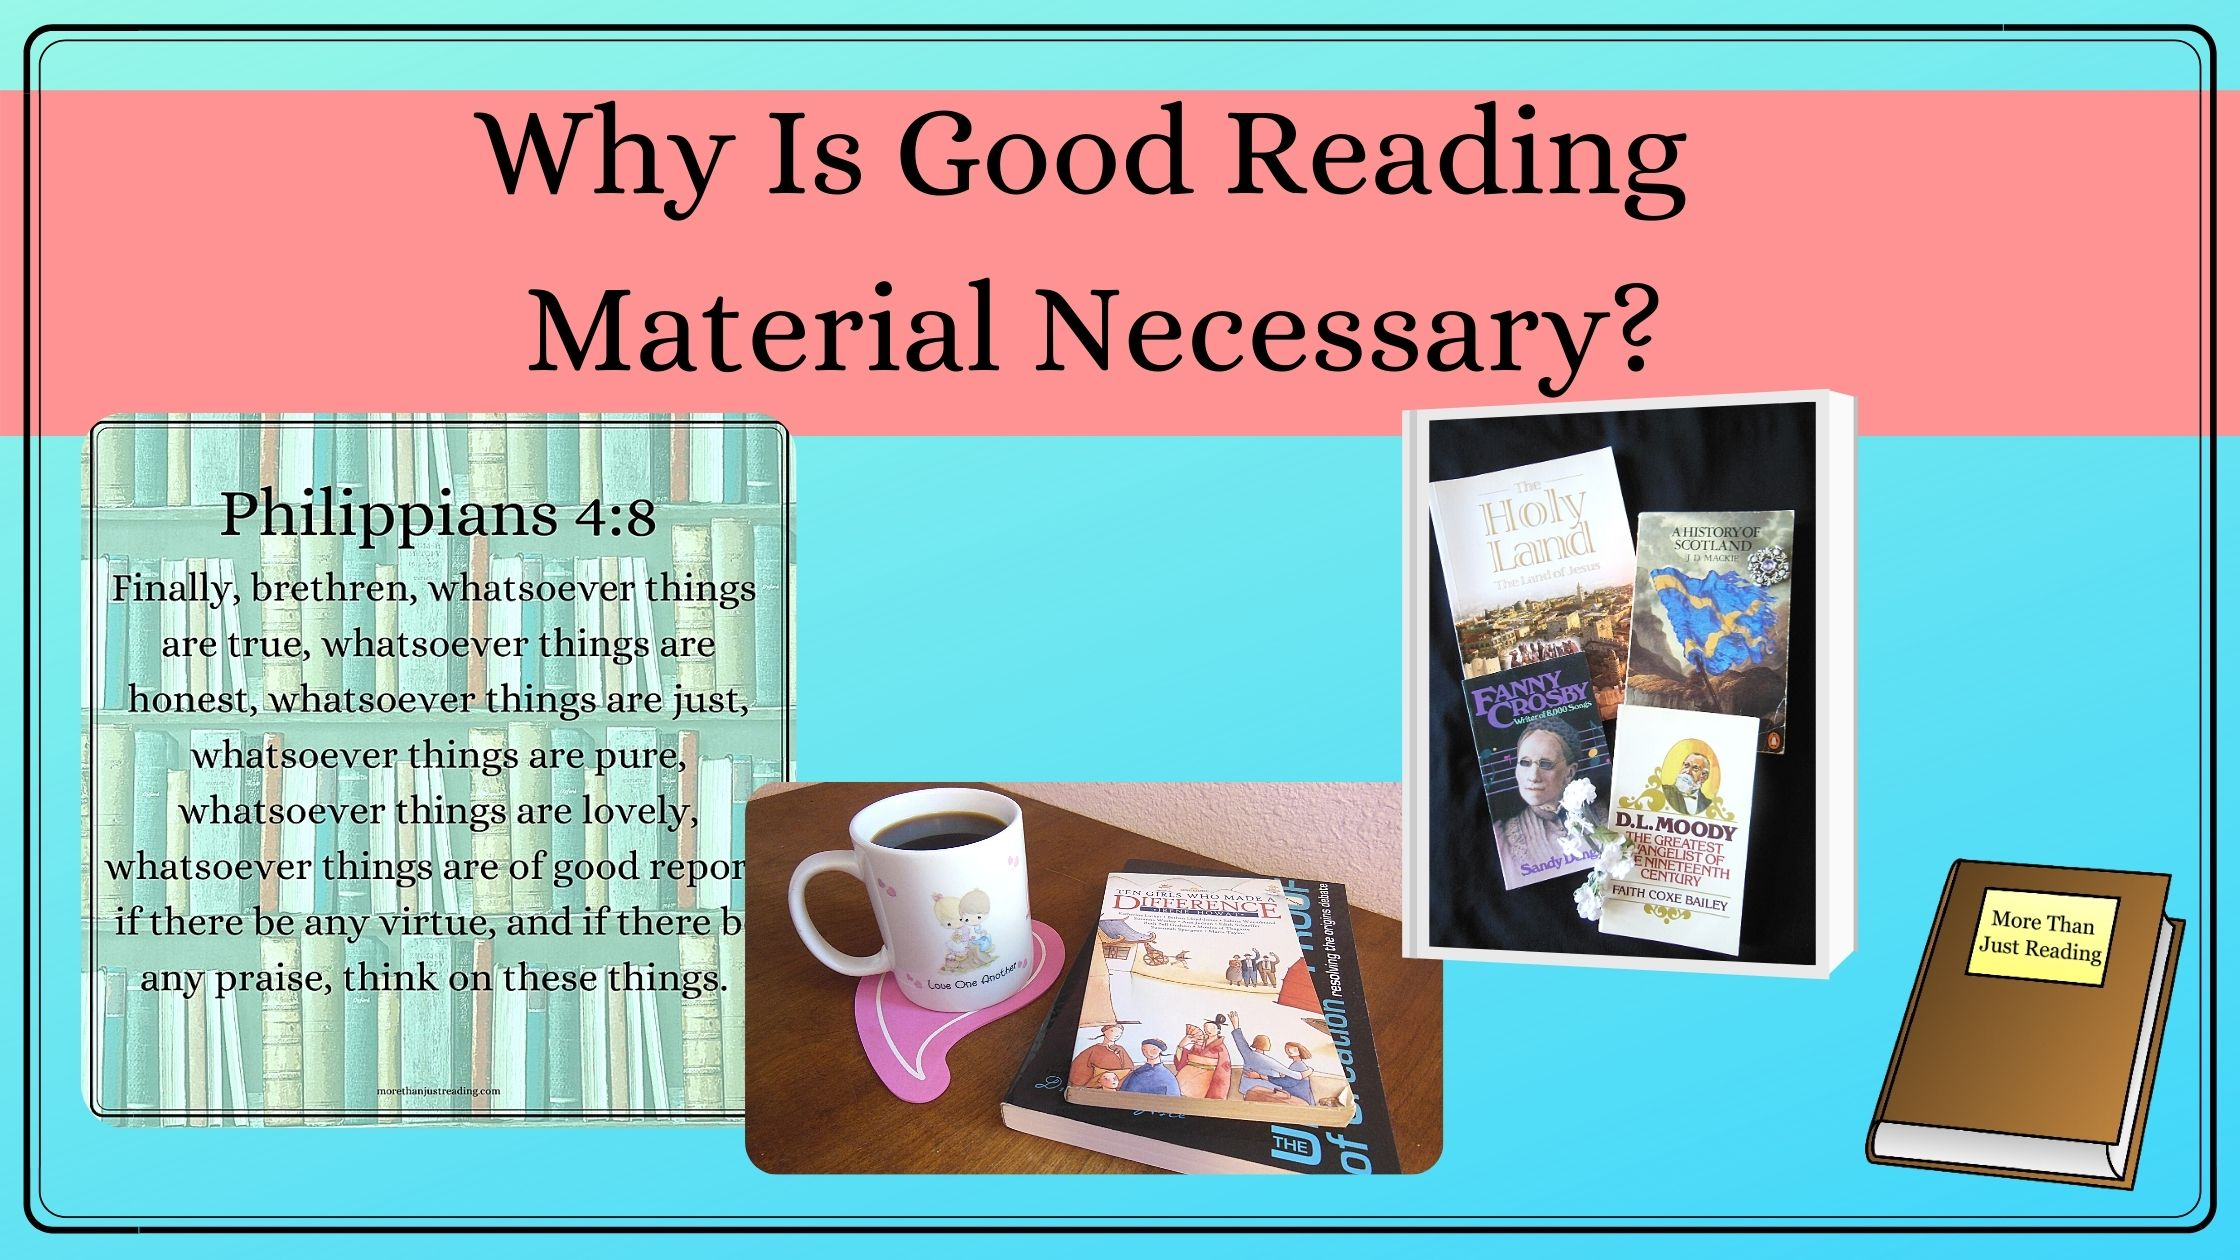 Why is good reading material necessary?